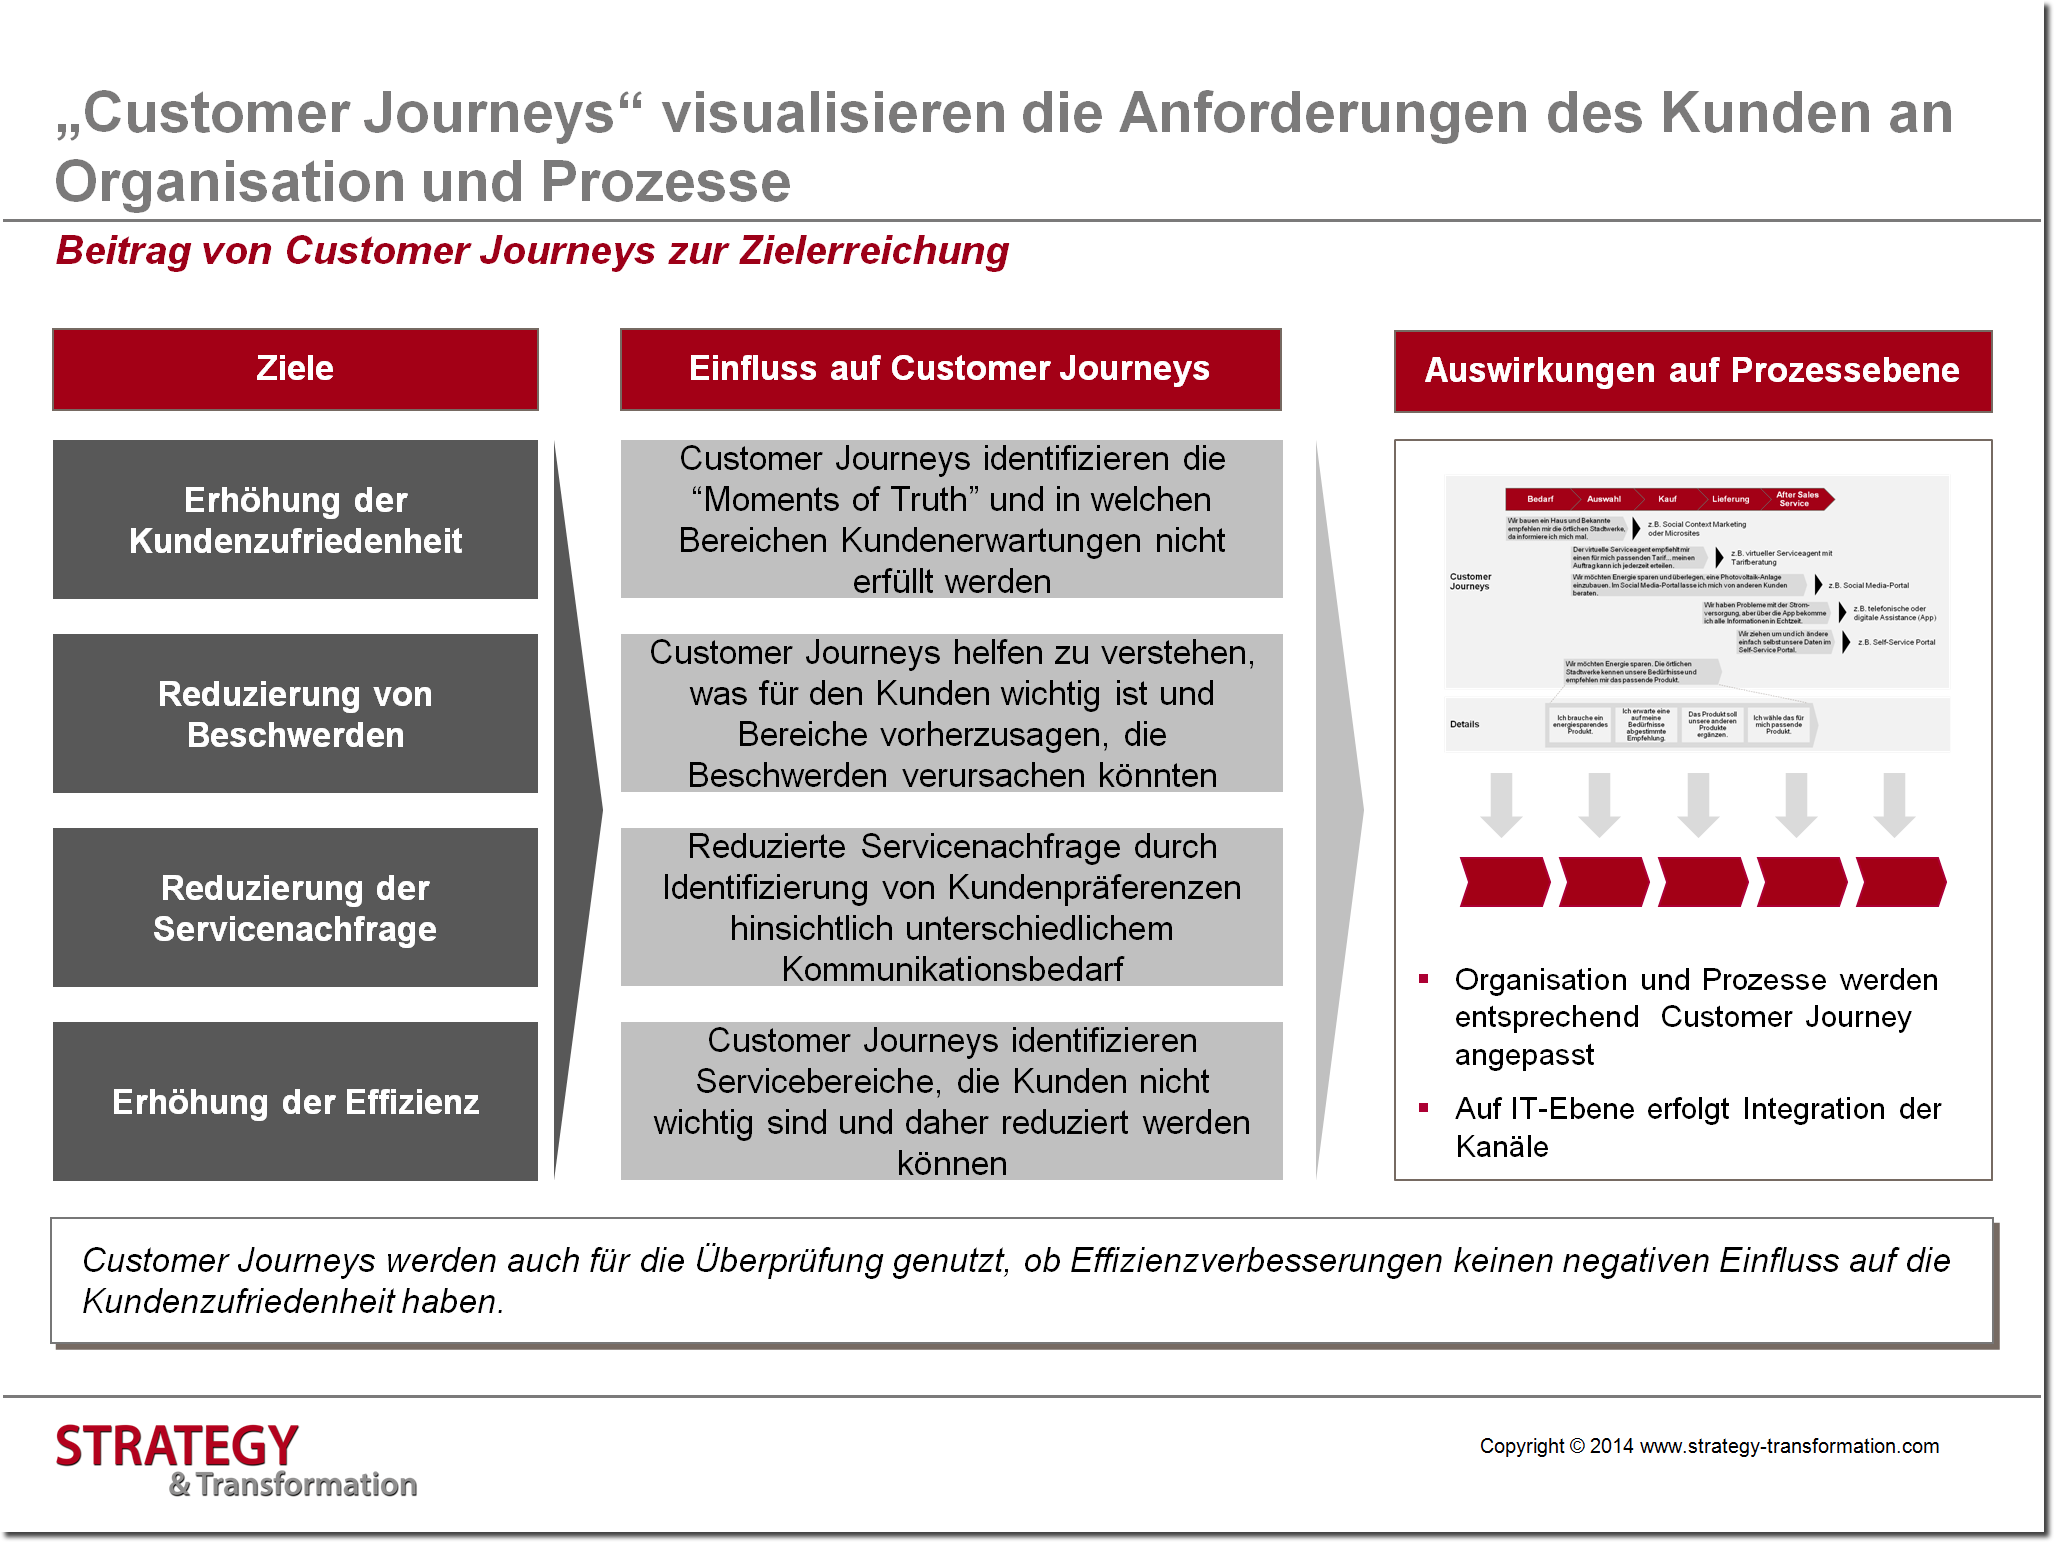 Digitale Transformation Energie_Beitrag von Customer Journeys zur Zielerreichung